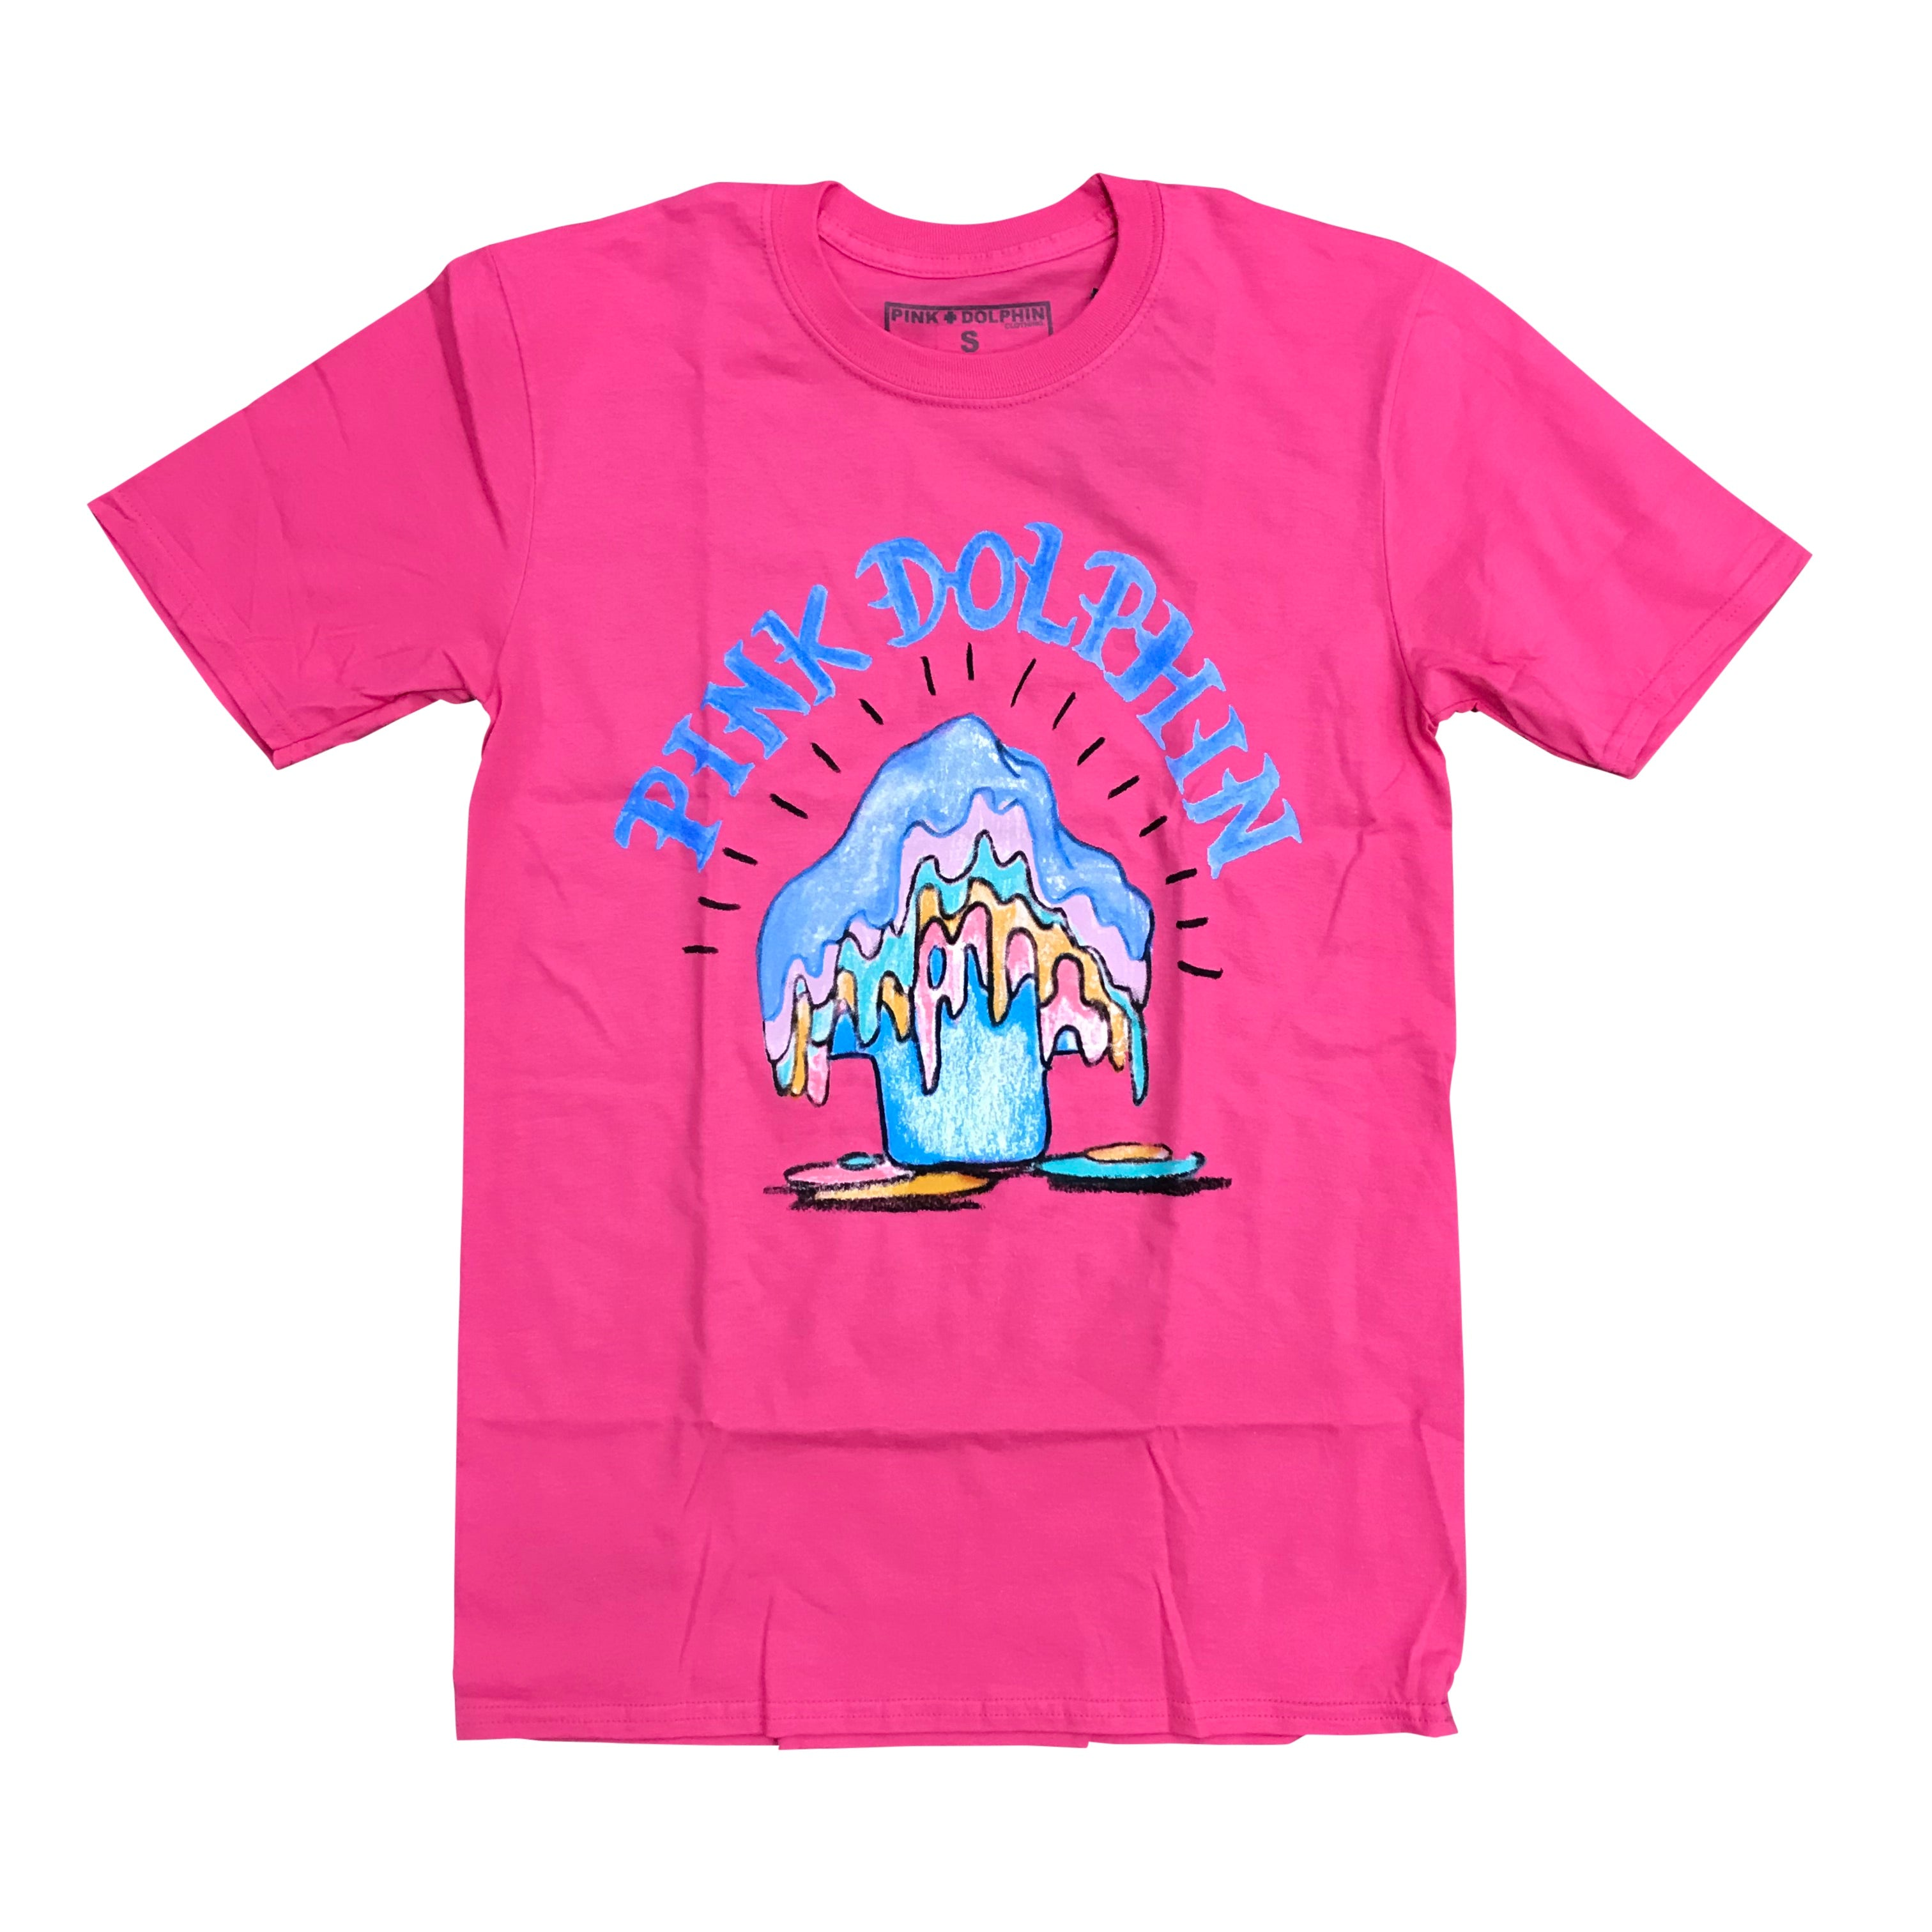 PINK + DOLPHIN CANDLE BRIGHT TEE - PINK SP11911CBPI